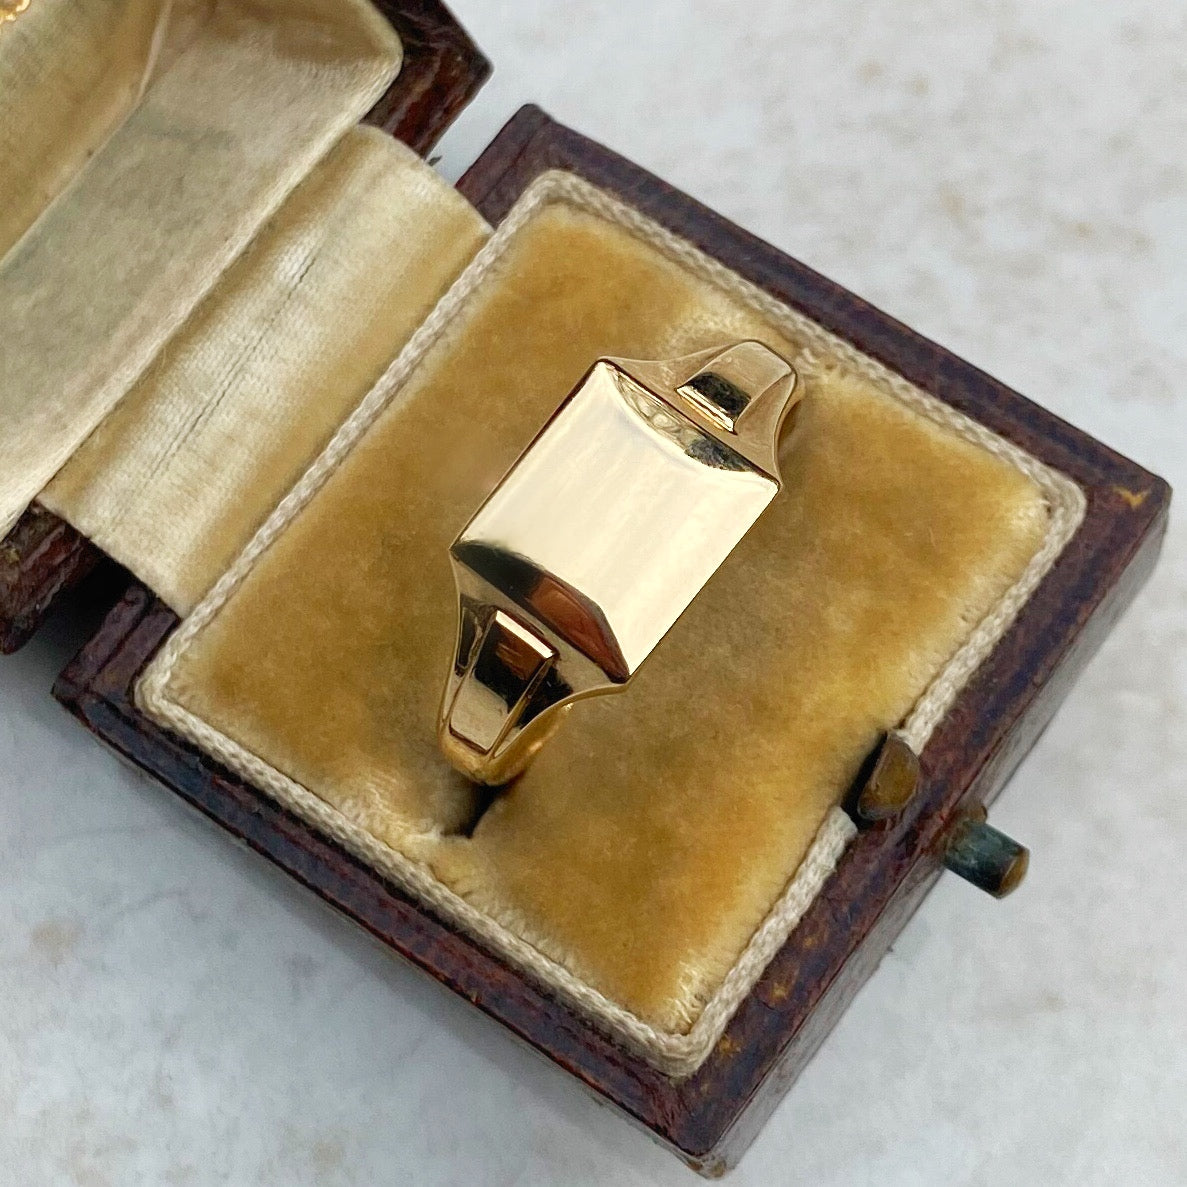 Vintage Gold Signet Ring by Henry Griffith & Sons